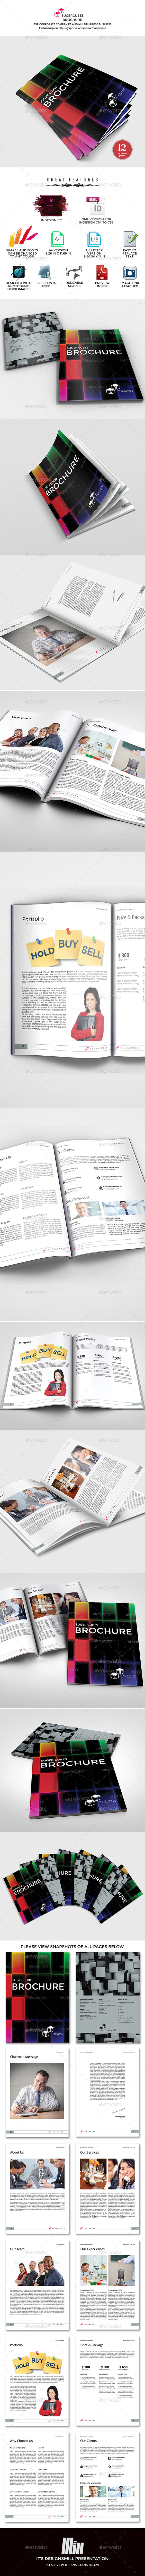 GraphicRiver Sugarcube Brochure for Business 9906998